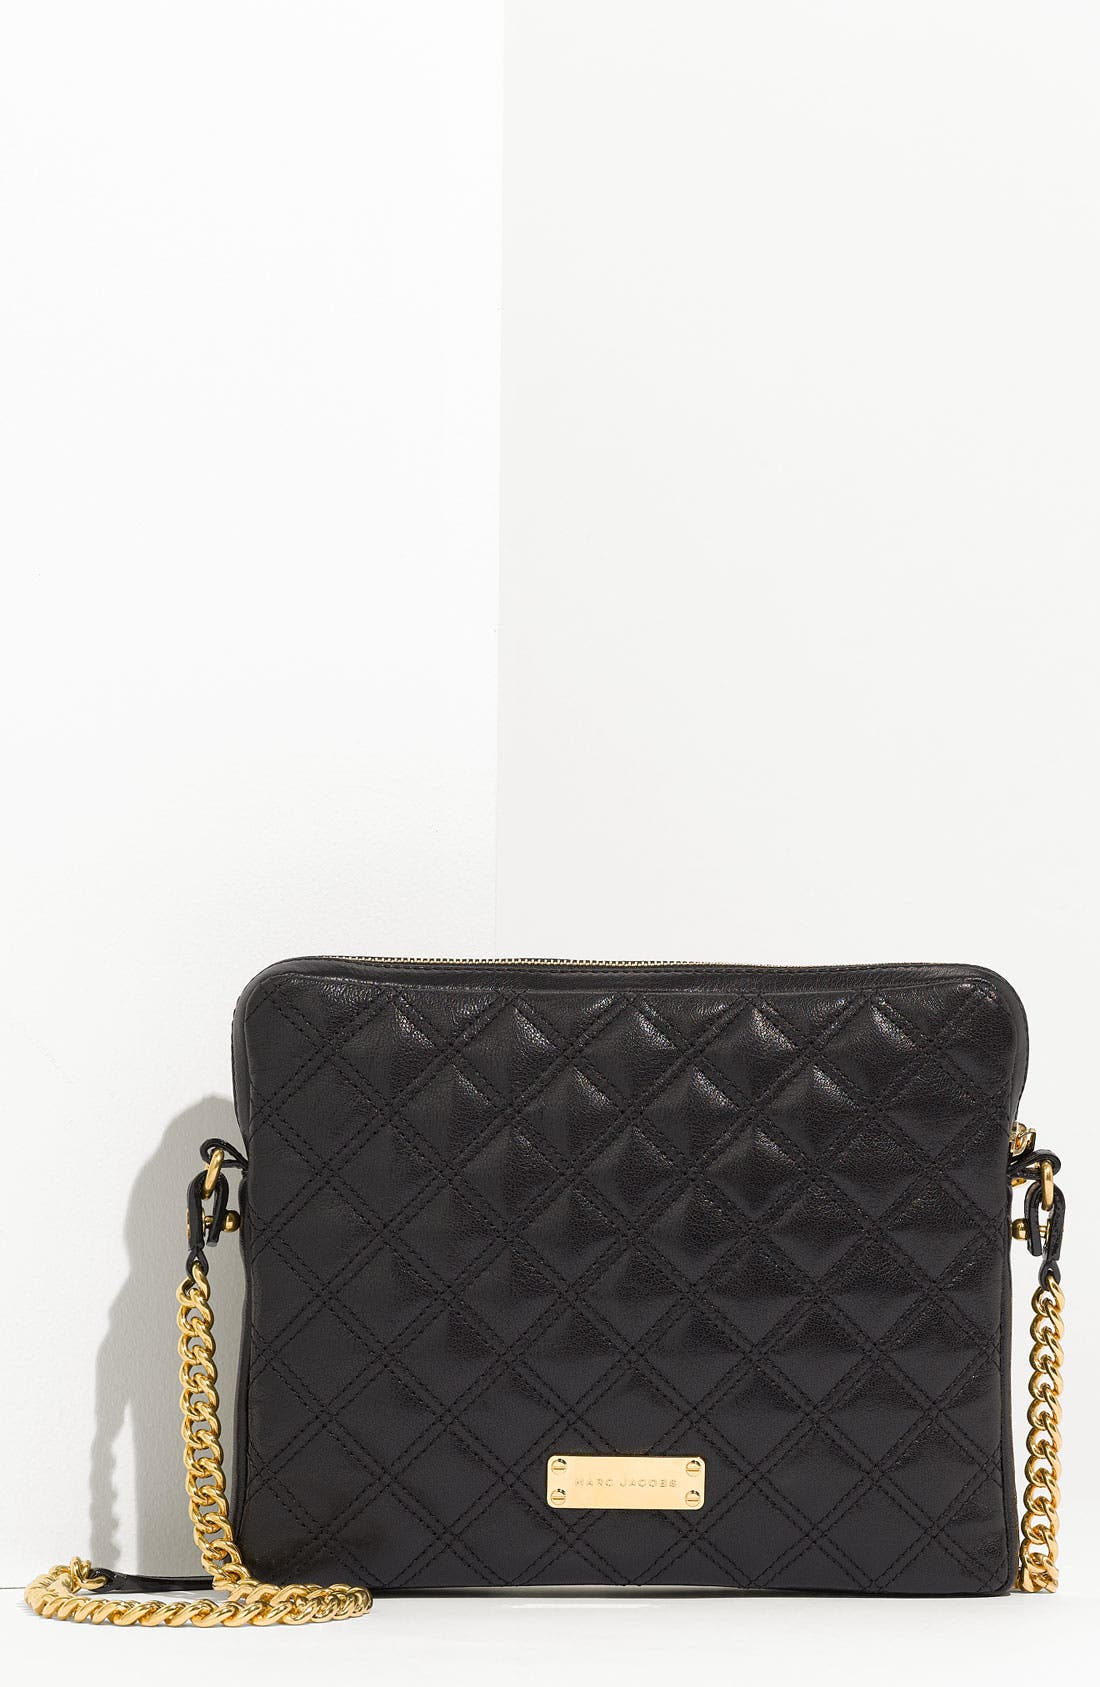 Main Image - MARC JACOBS 'Quilting' Leather Crossbody iPad Case